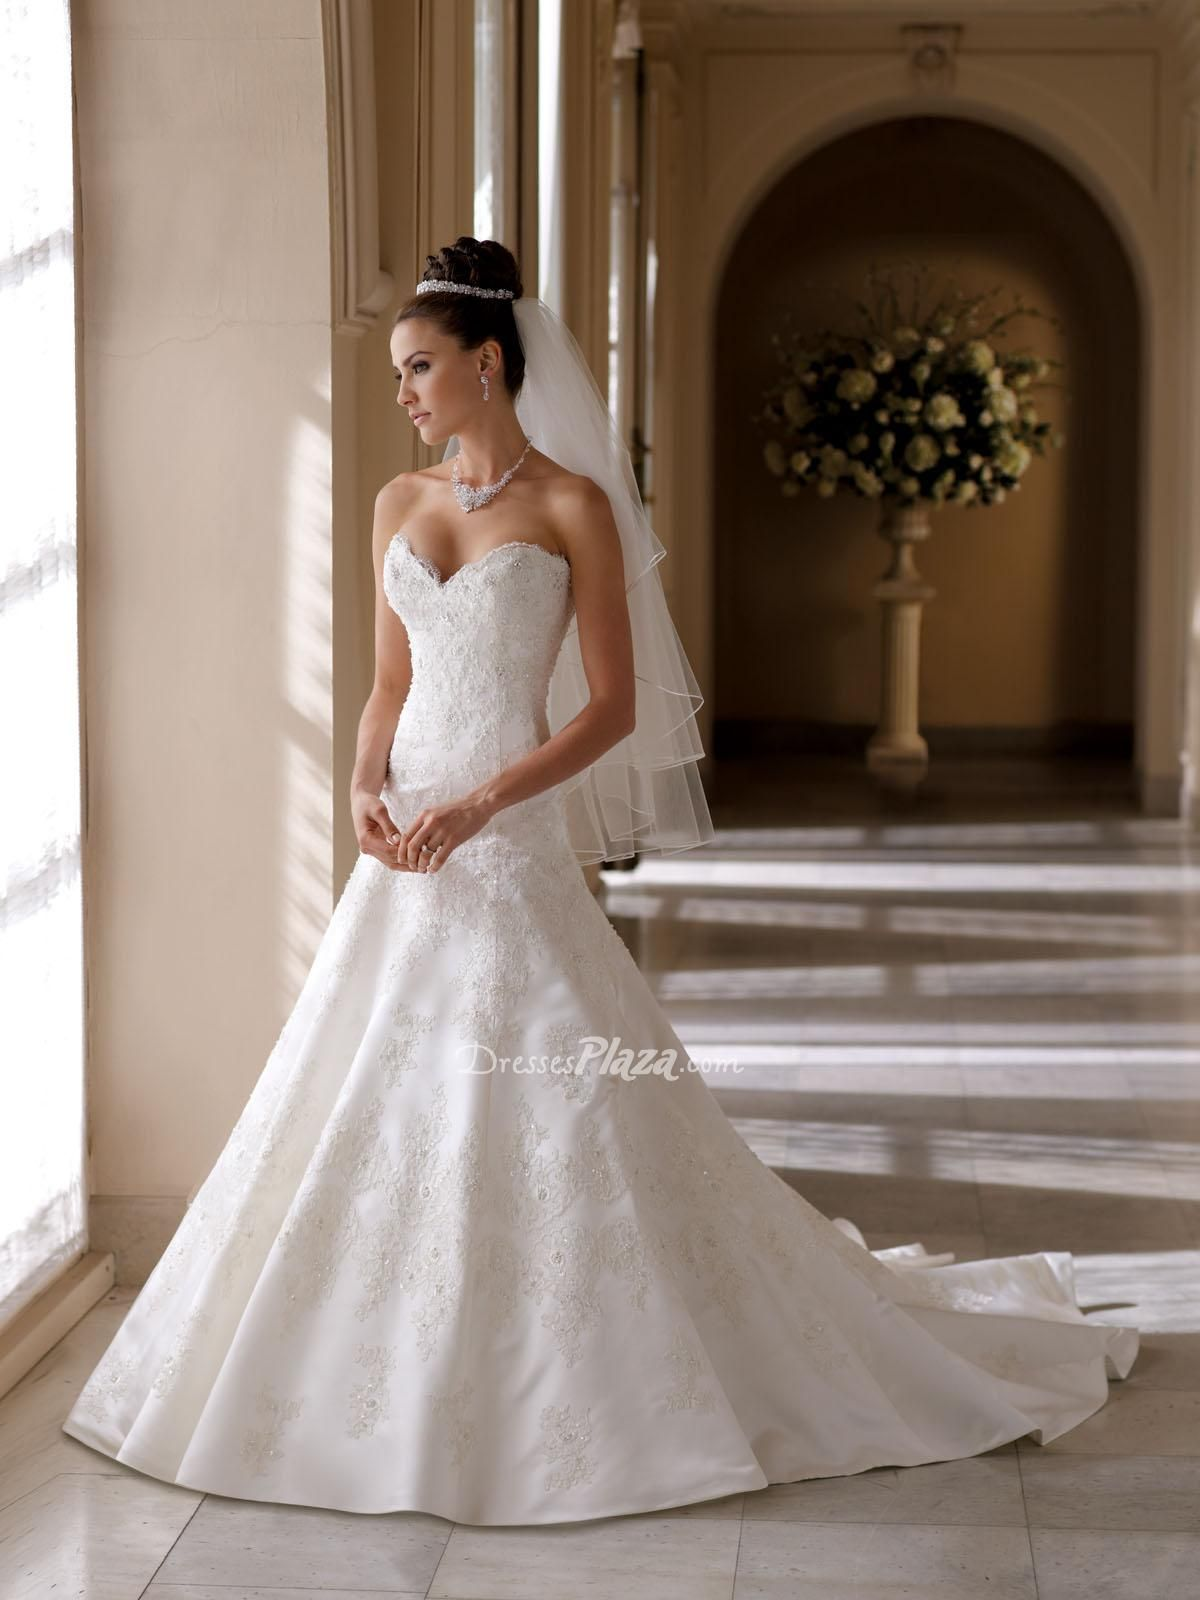 sweetheart neckline wedding dress beaded lace over a line wedding dress with sweetheart neckline and corset back